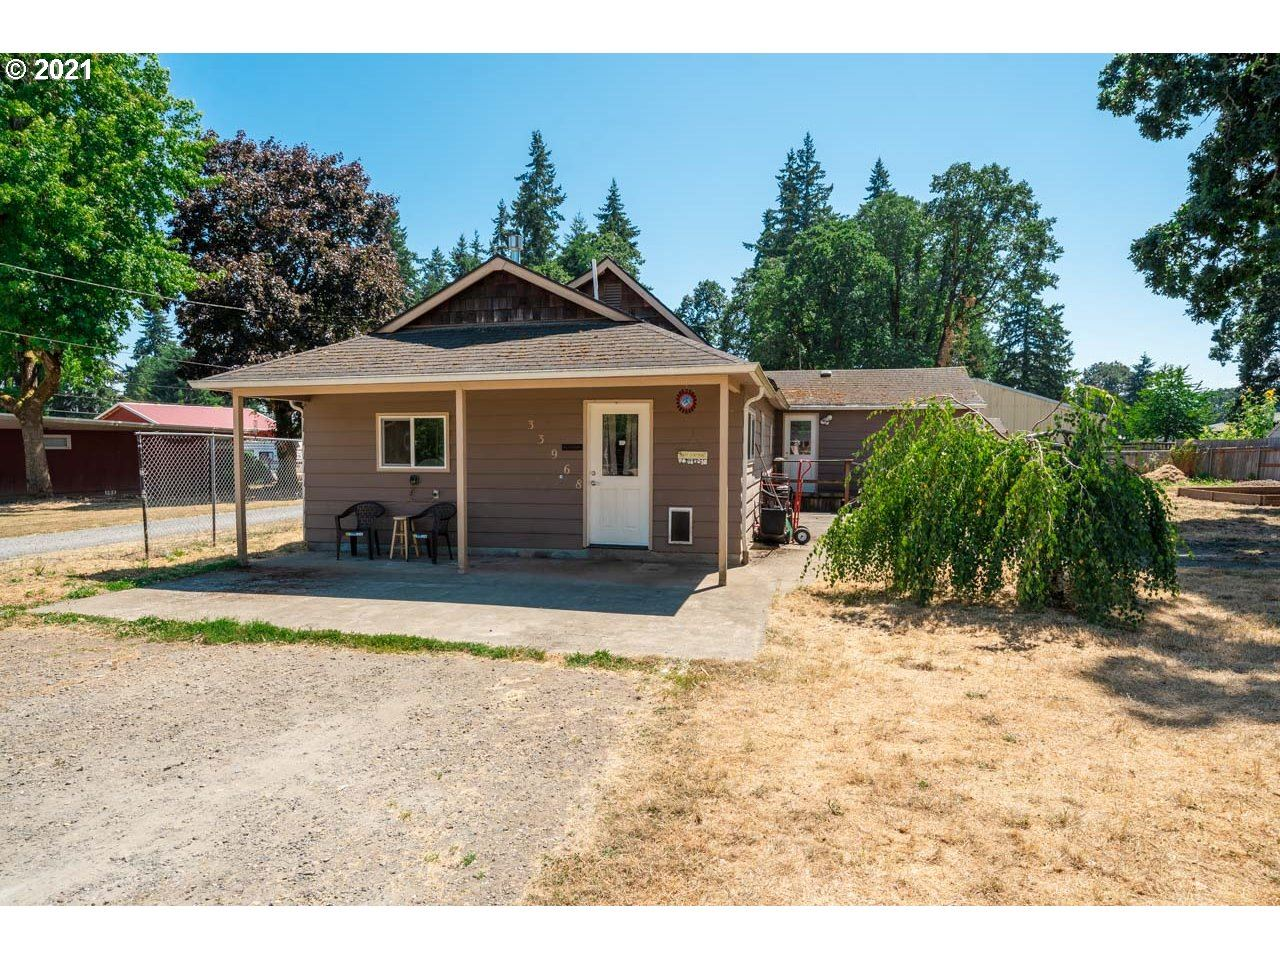 33968 E COLUMBIA AVE, Scappoose, OR 97056 - MLS#: 21286842